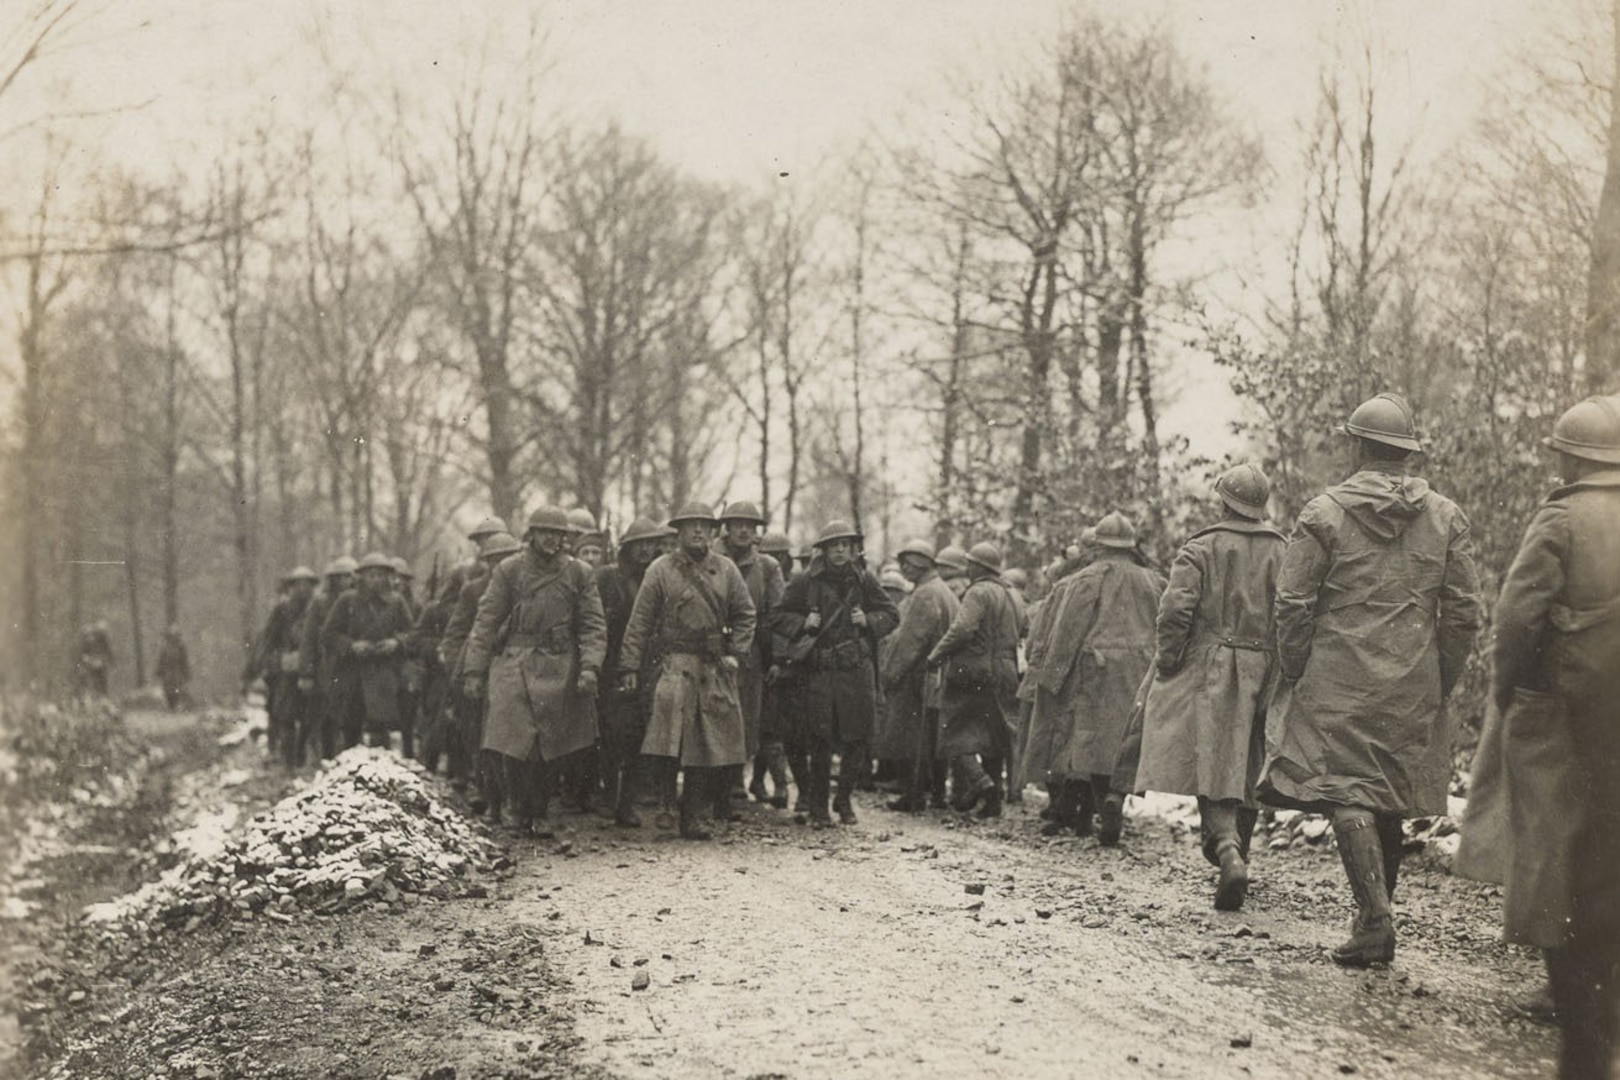 Soldiers march in formation.